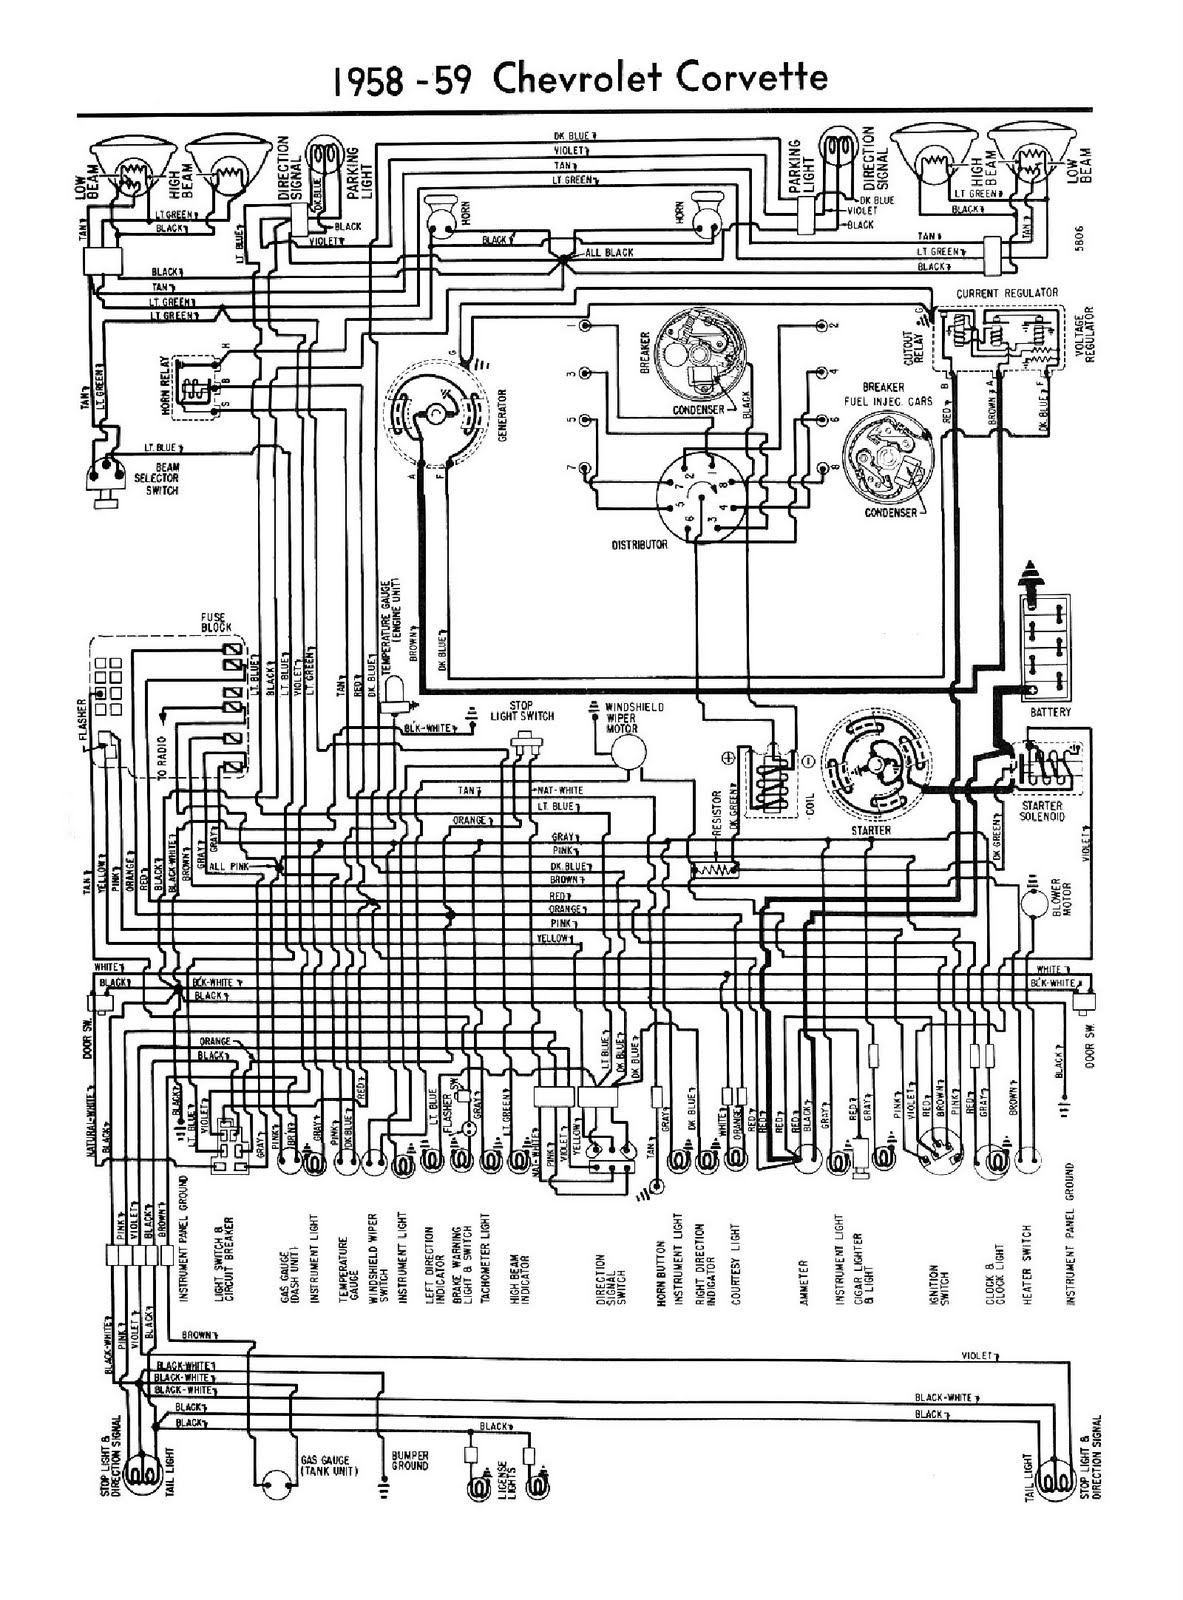 Gas Gauge Wiring Diagram from 3.bp.blogspot.com